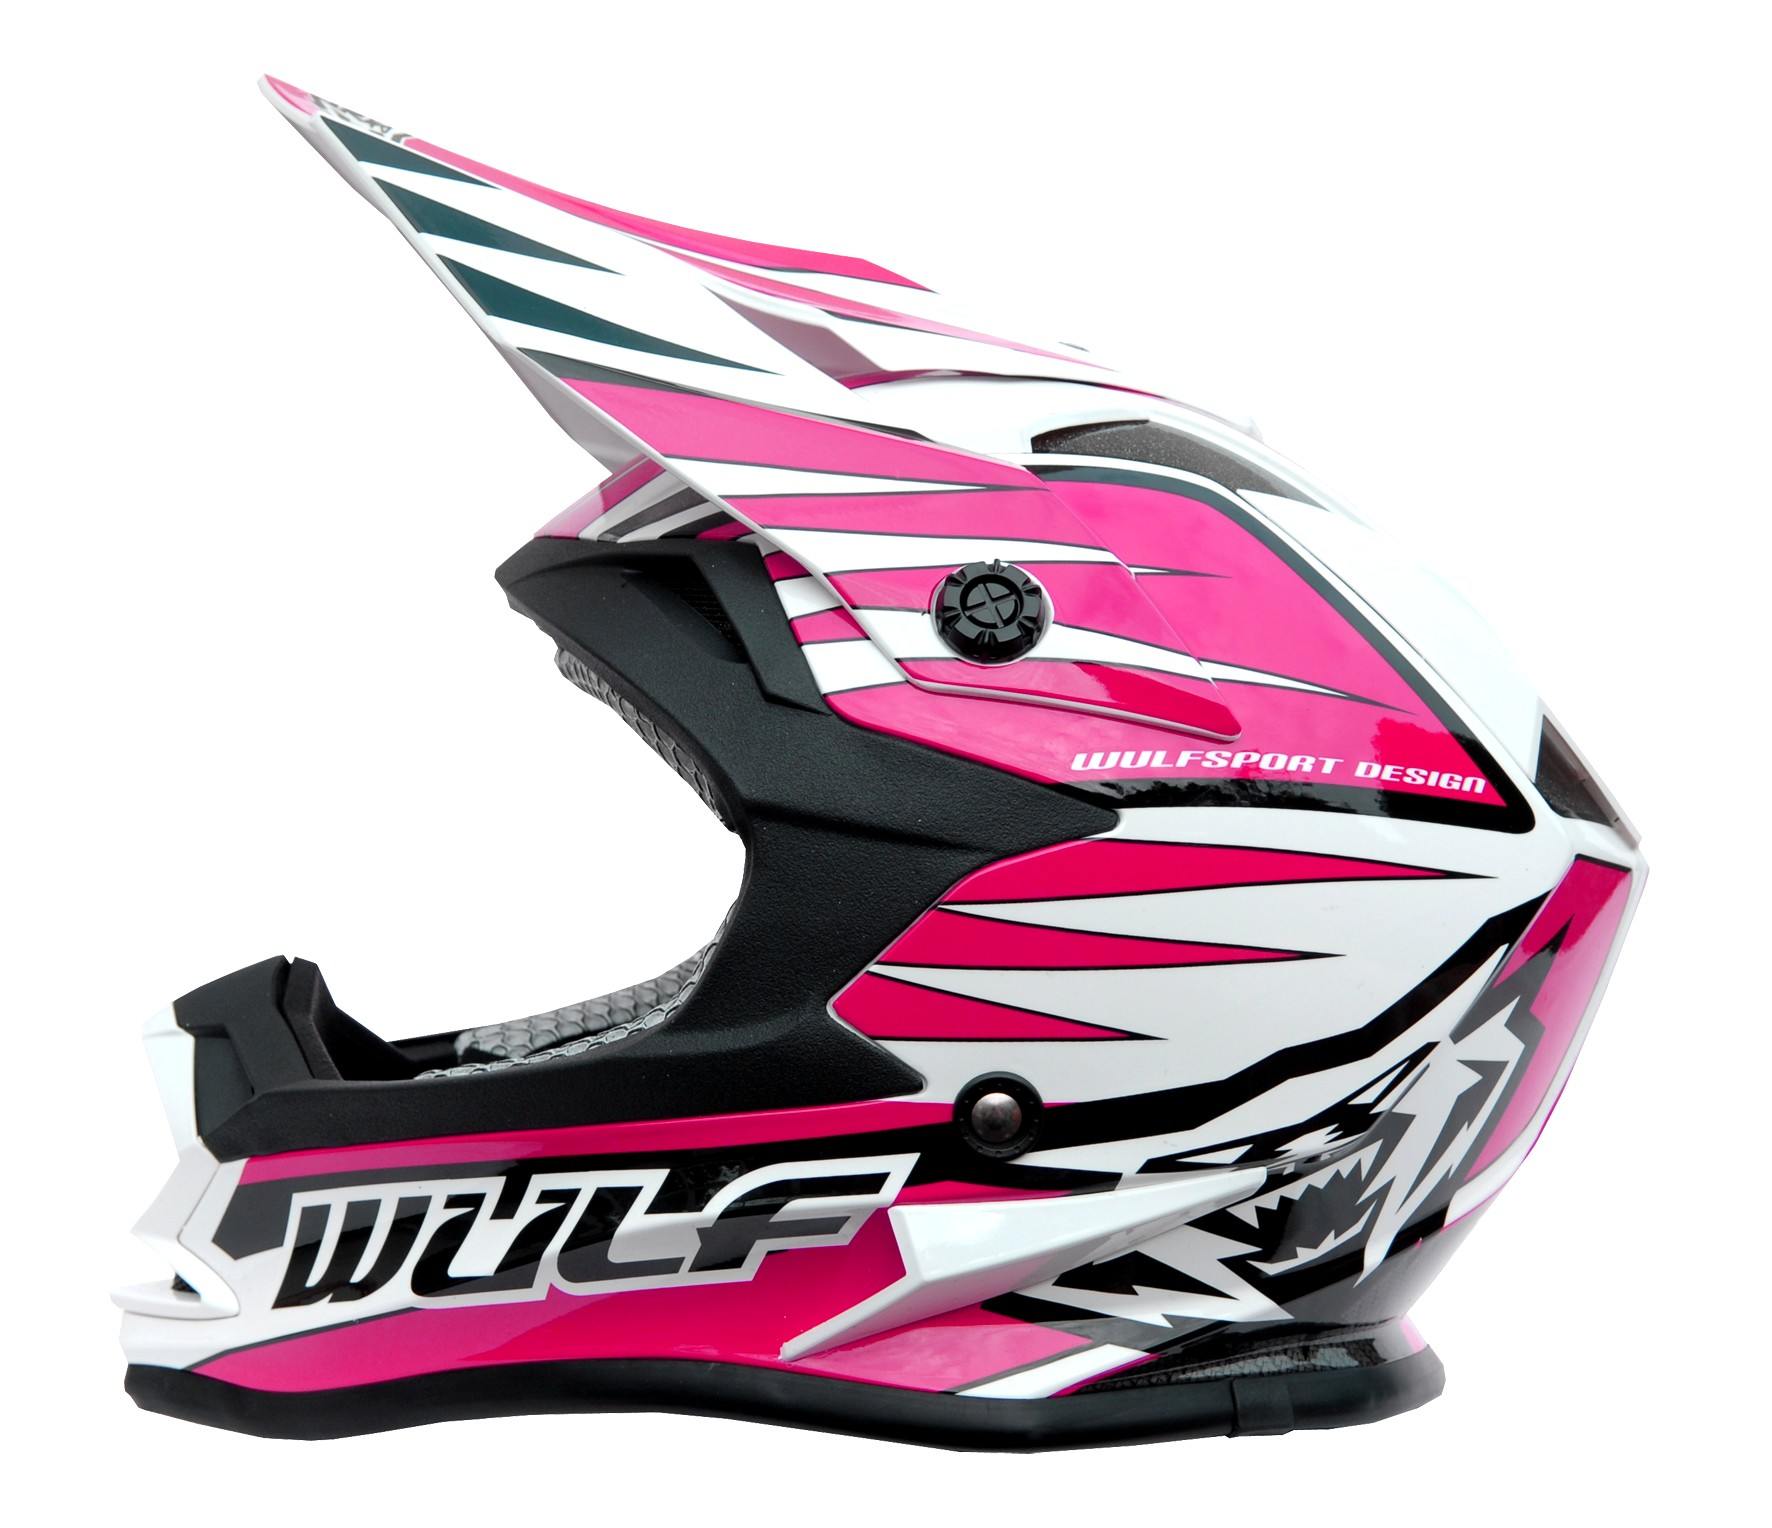 casque enfant moto cross wulfsport advance rose ys a yxl. Black Bedroom Furniture Sets. Home Design Ideas